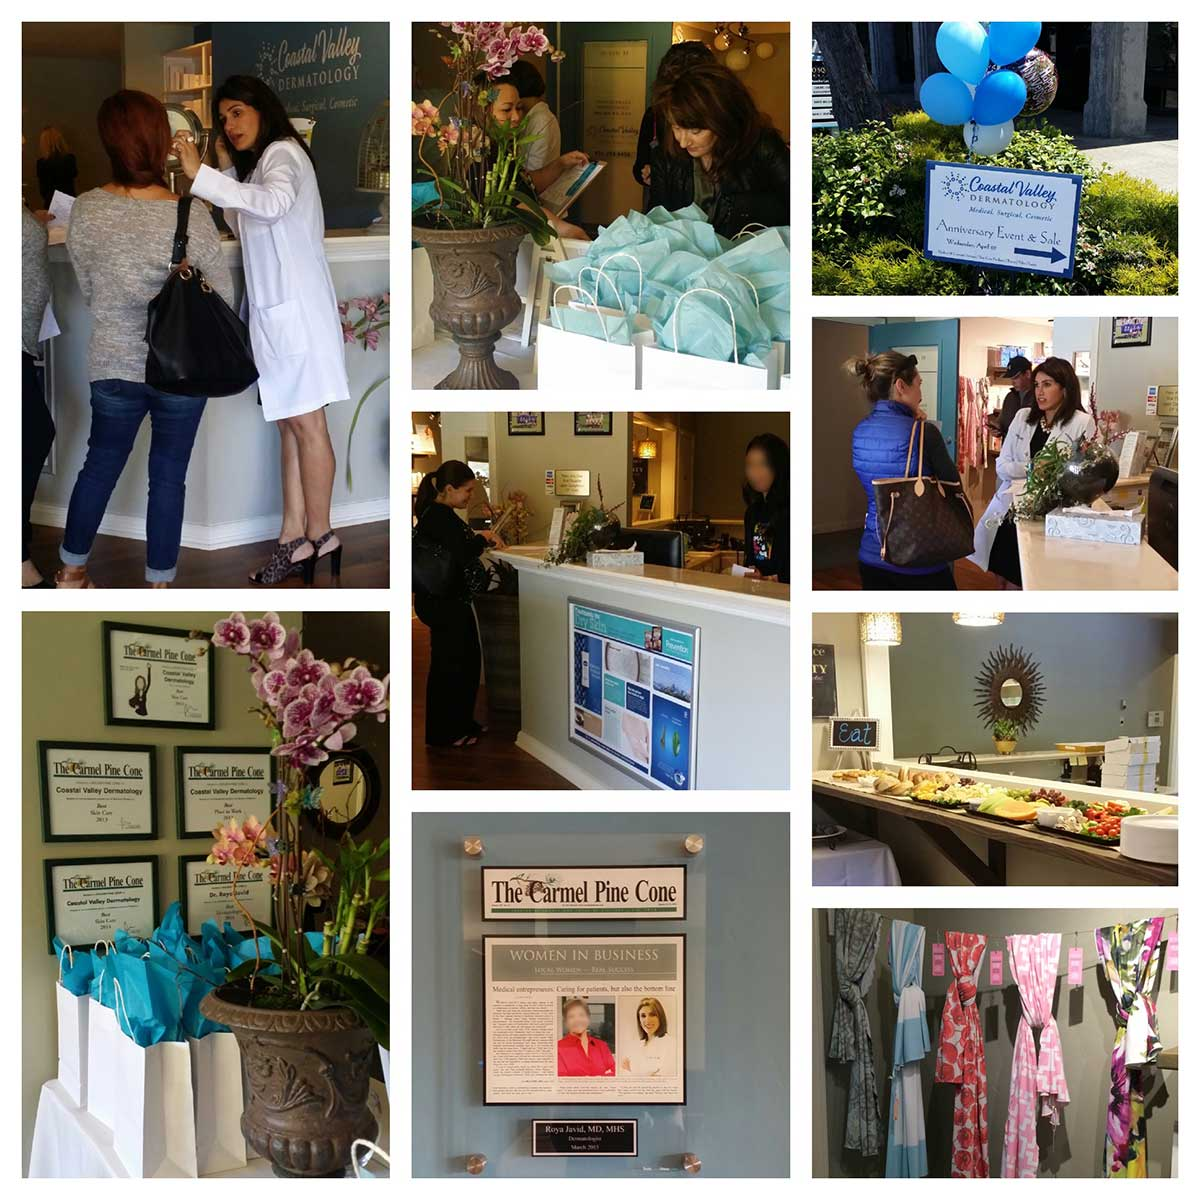 coastal-valley-dermatology-carmel-events-photo